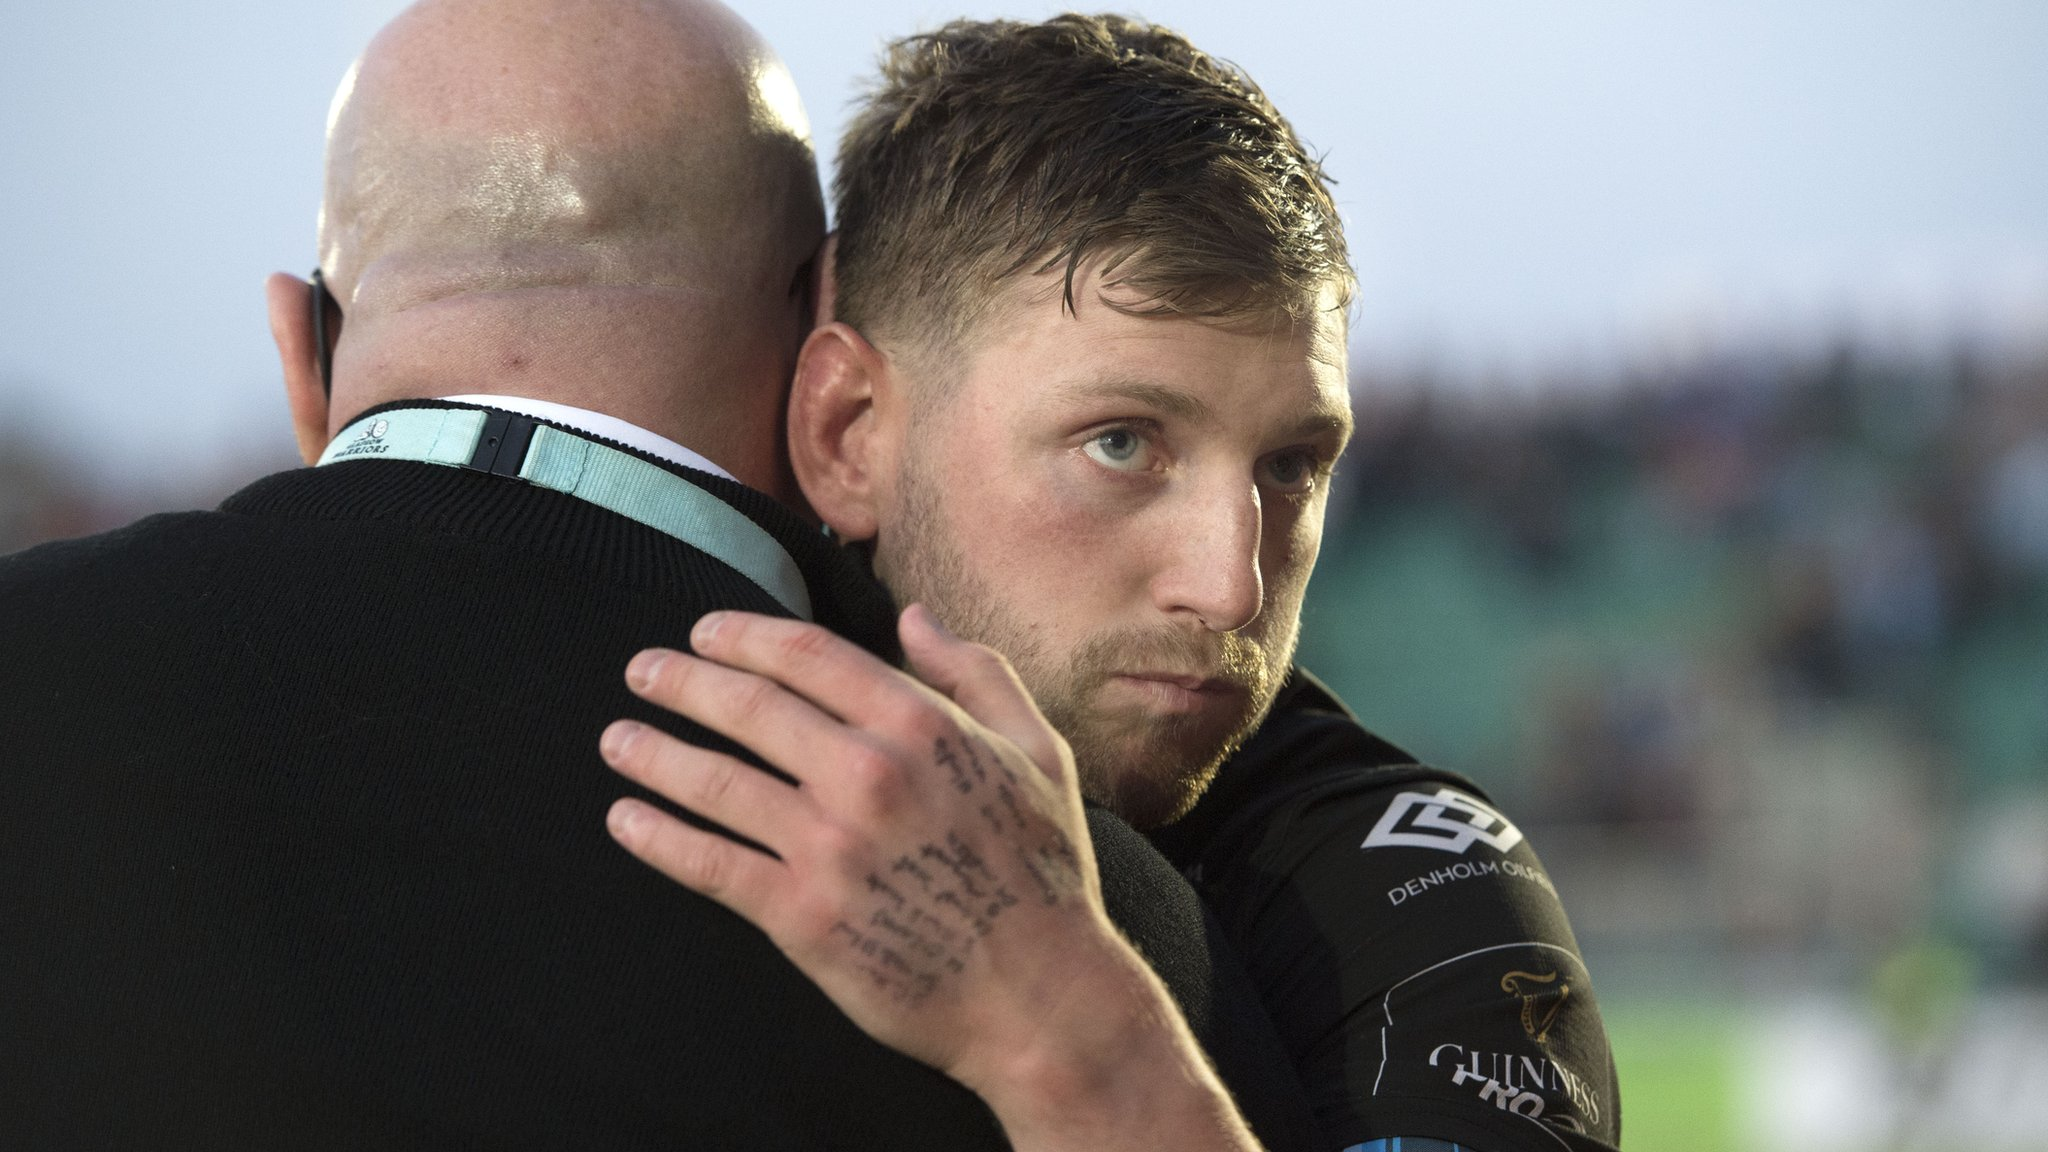 Glasgow 13-28 Scarlets: 'Not how I wanted to mark Warriors exit' - Finn Russell